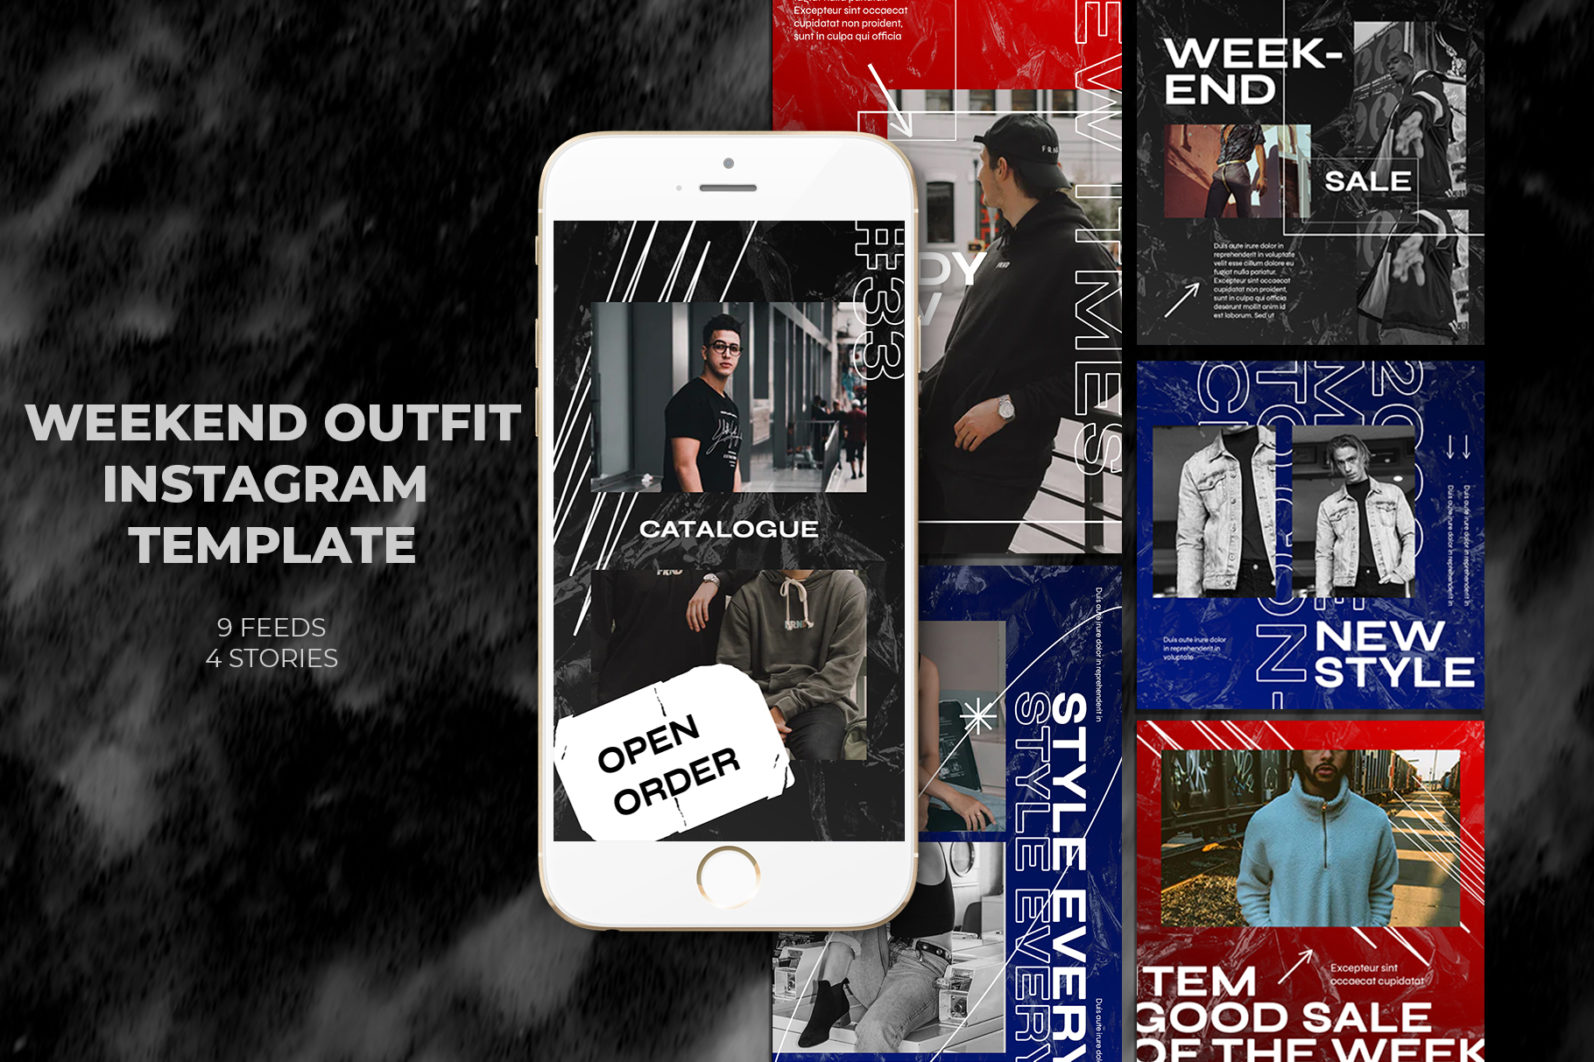 Weekend Outfit Instagram Templates - 9 feed 4 story1 7 -